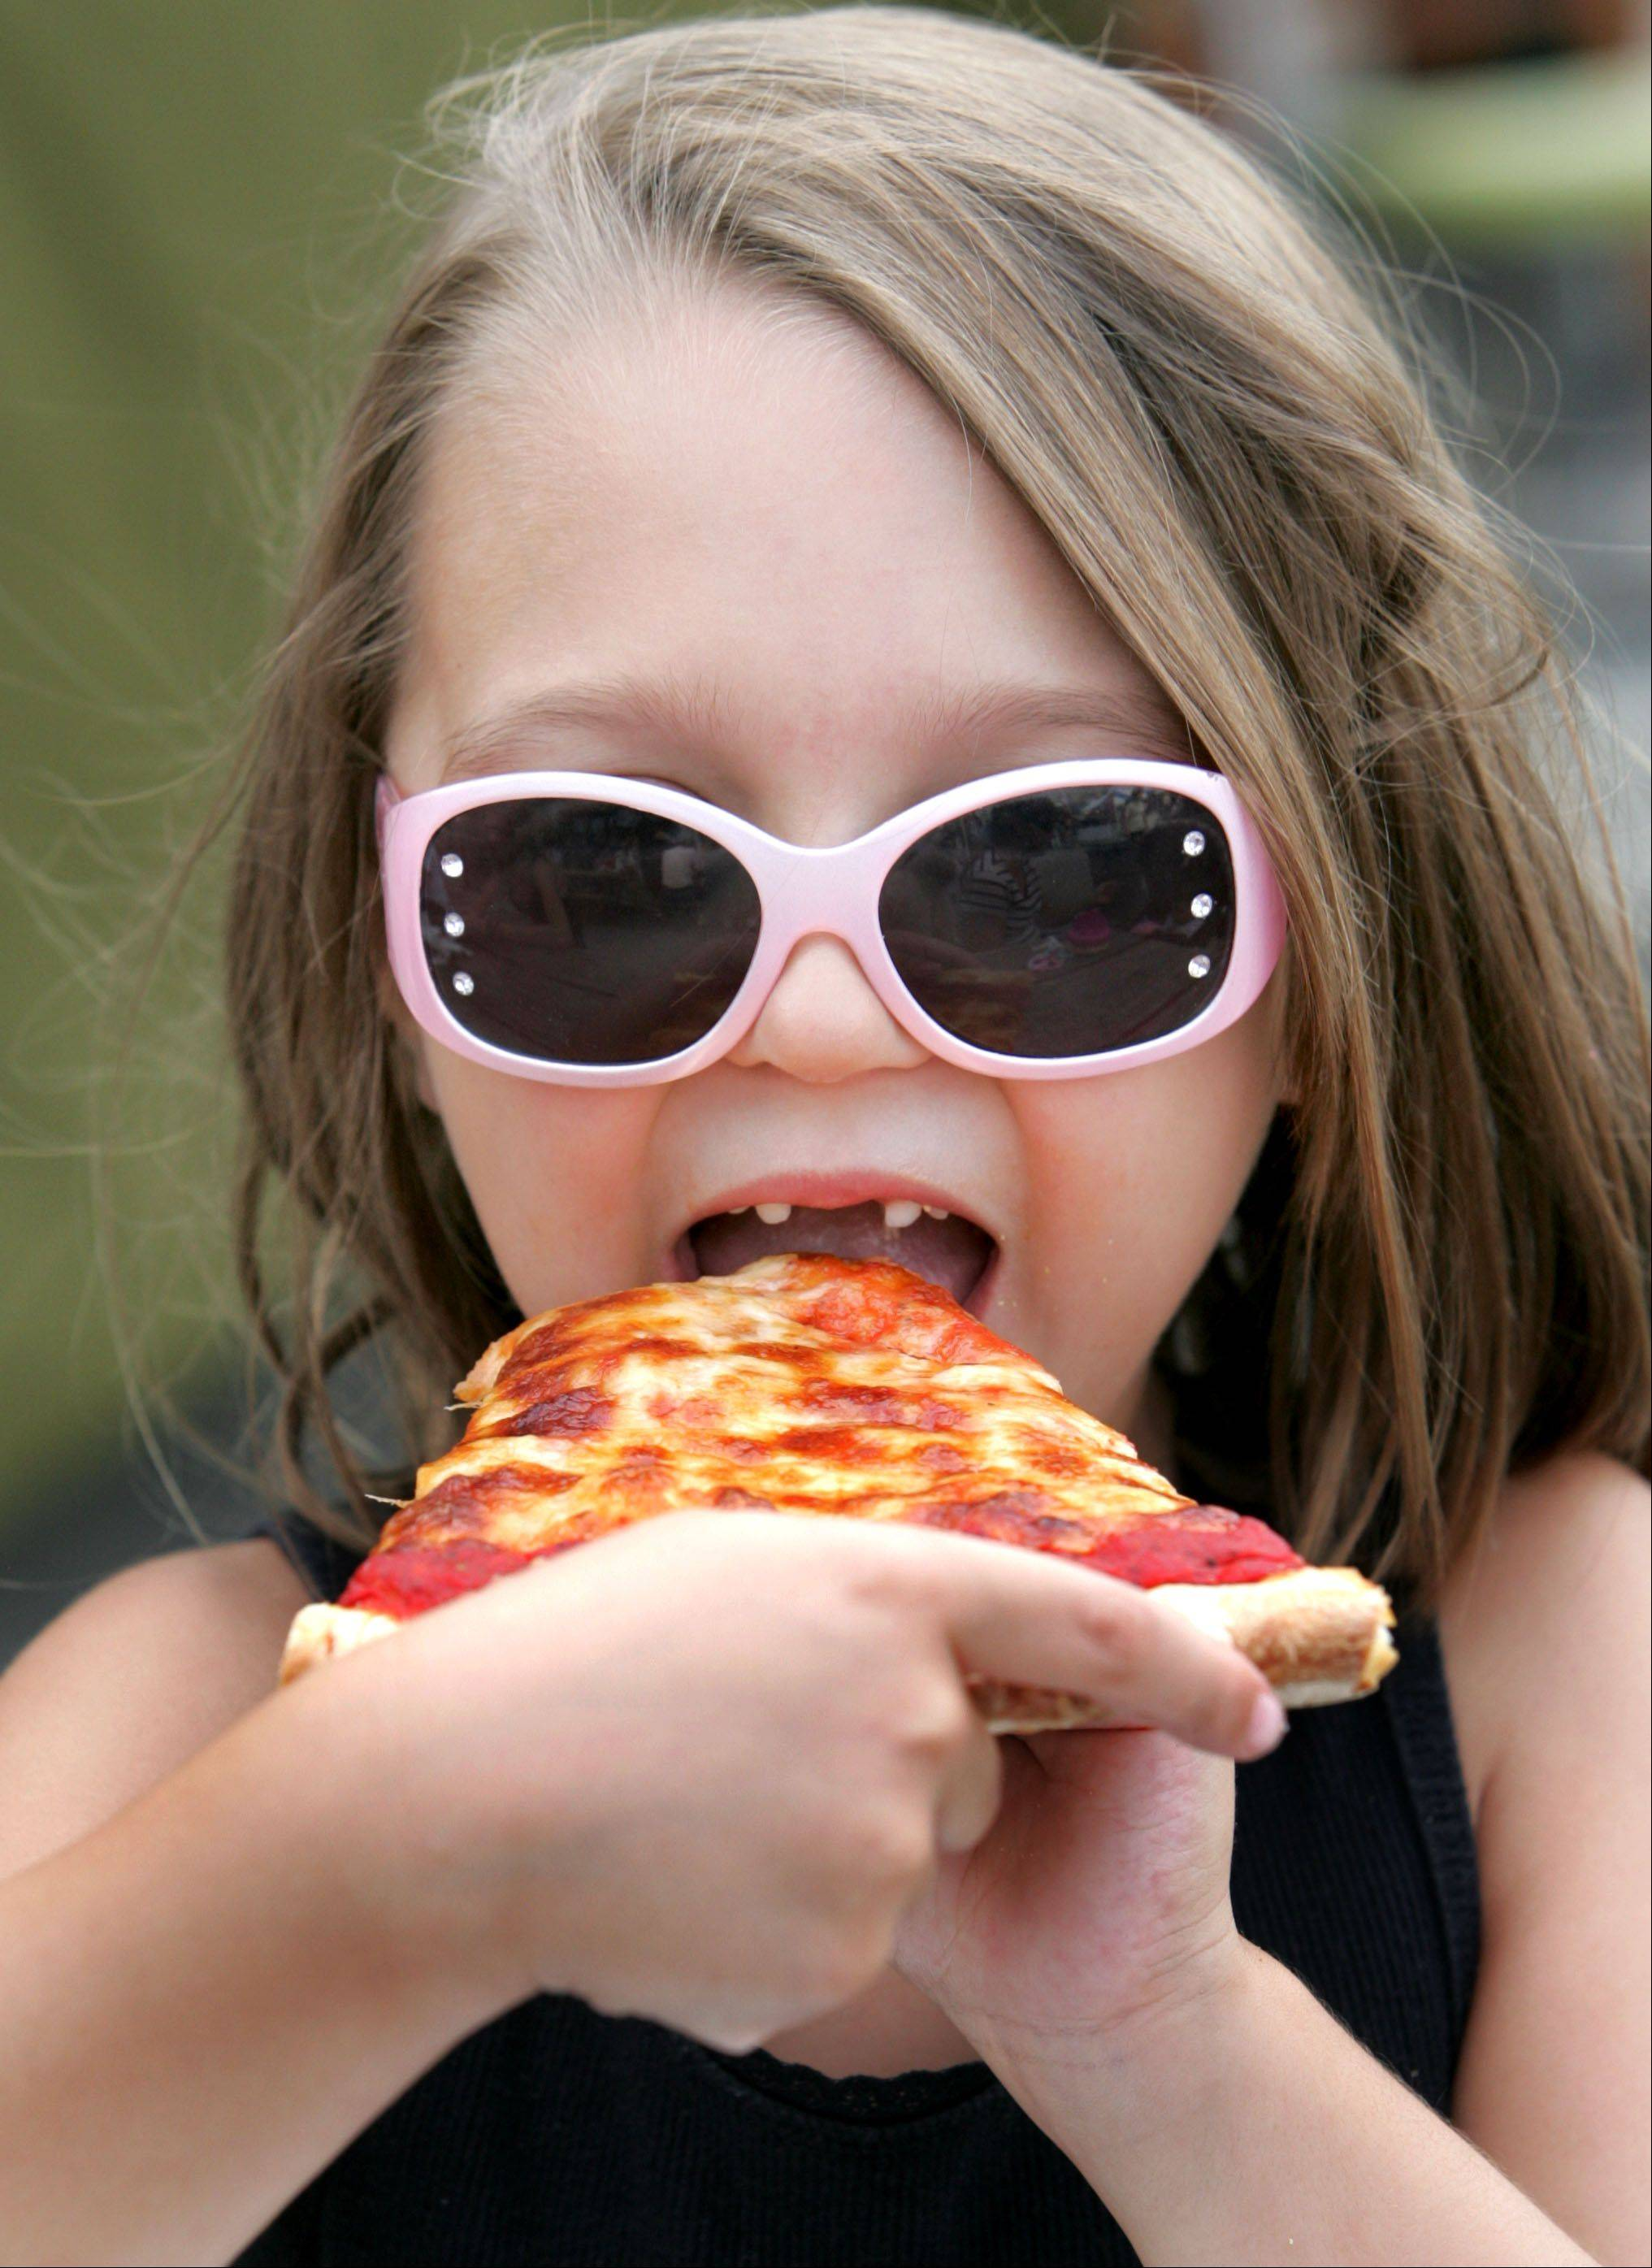 Gracie Caputo, 5, doesn't let a lack of front teeth stop her from taking a bite of pizza during opening day of the Taste of Roselle on Friday.